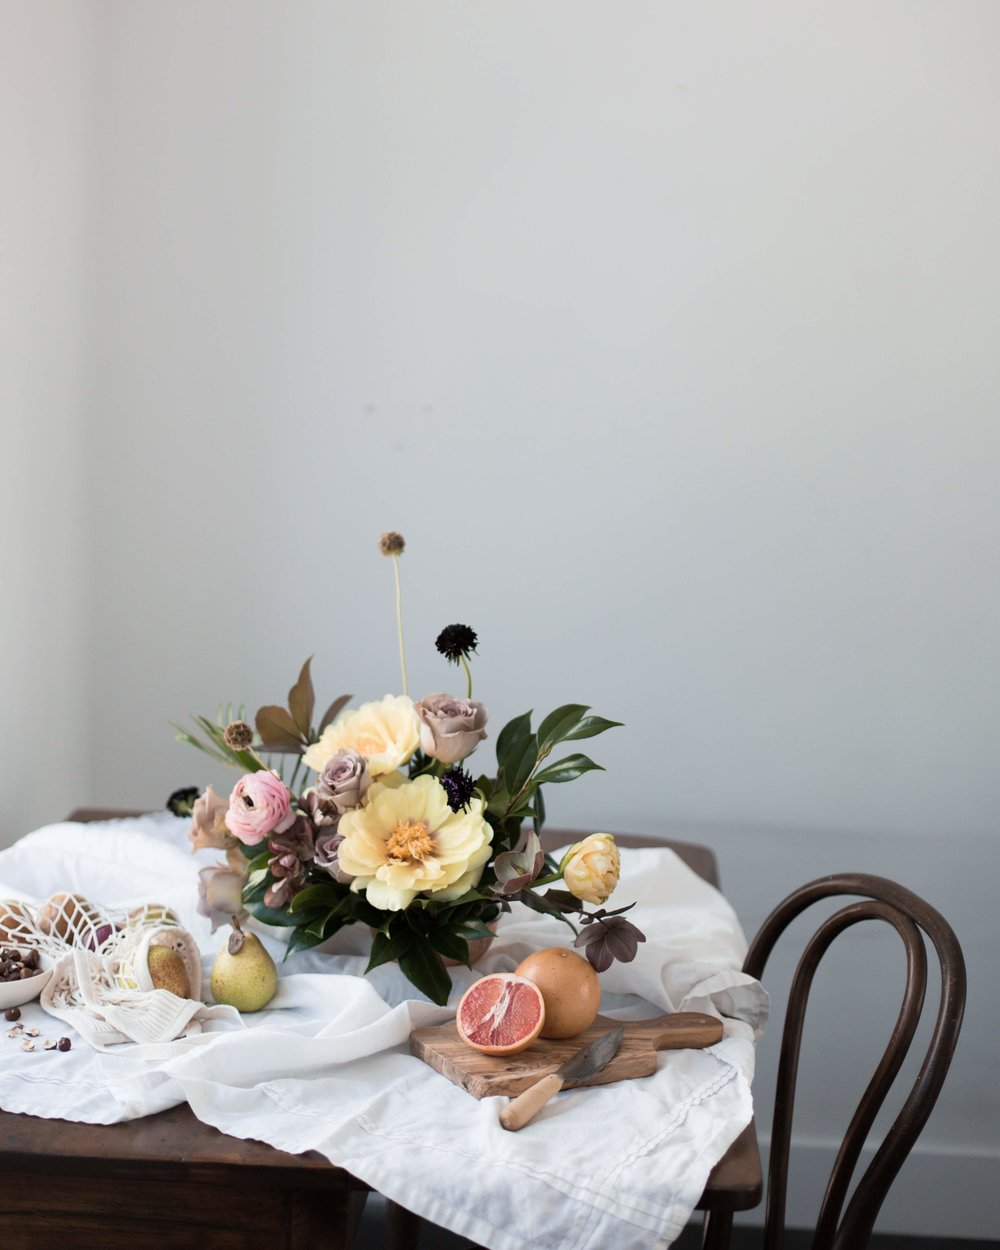 on the blog - our candle journey started with flowers